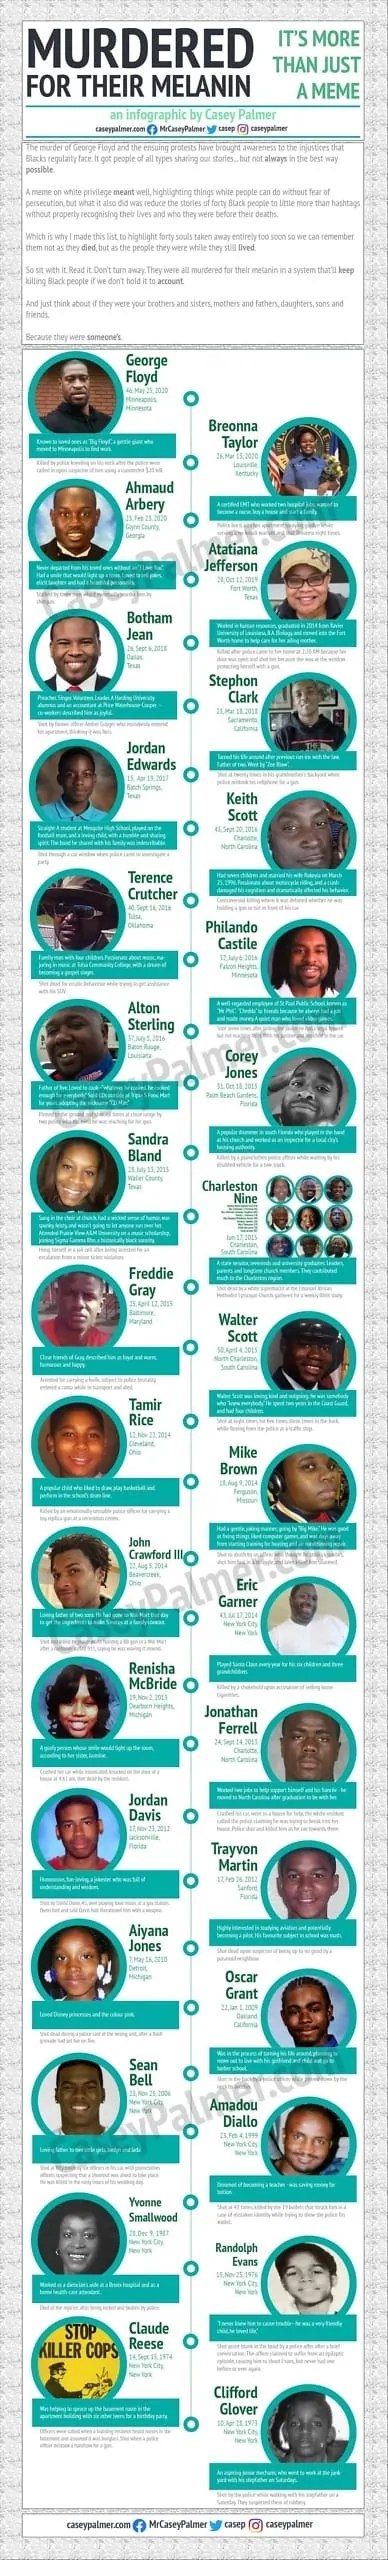 Murdered for their Melanin — An Infographic on Black Lives Taken far too Soon (web)